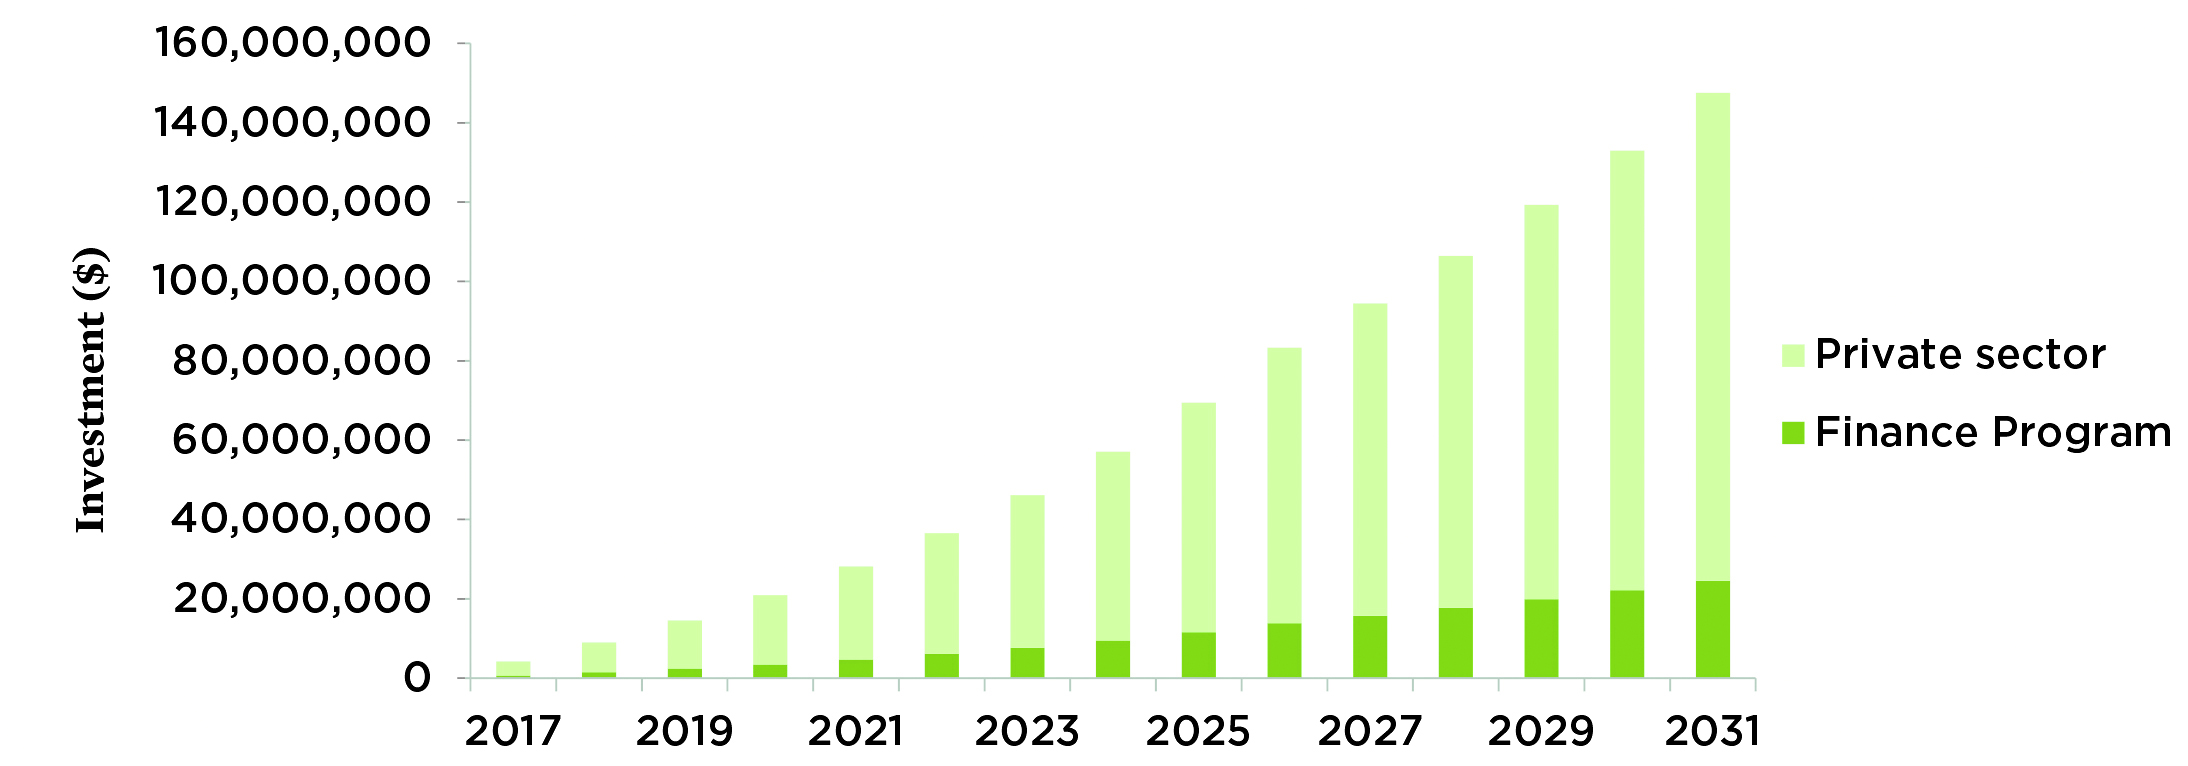 A Vermont clean energy financing program could leverage more than $123 million - Graphs from the Union of Concerned Scientists.